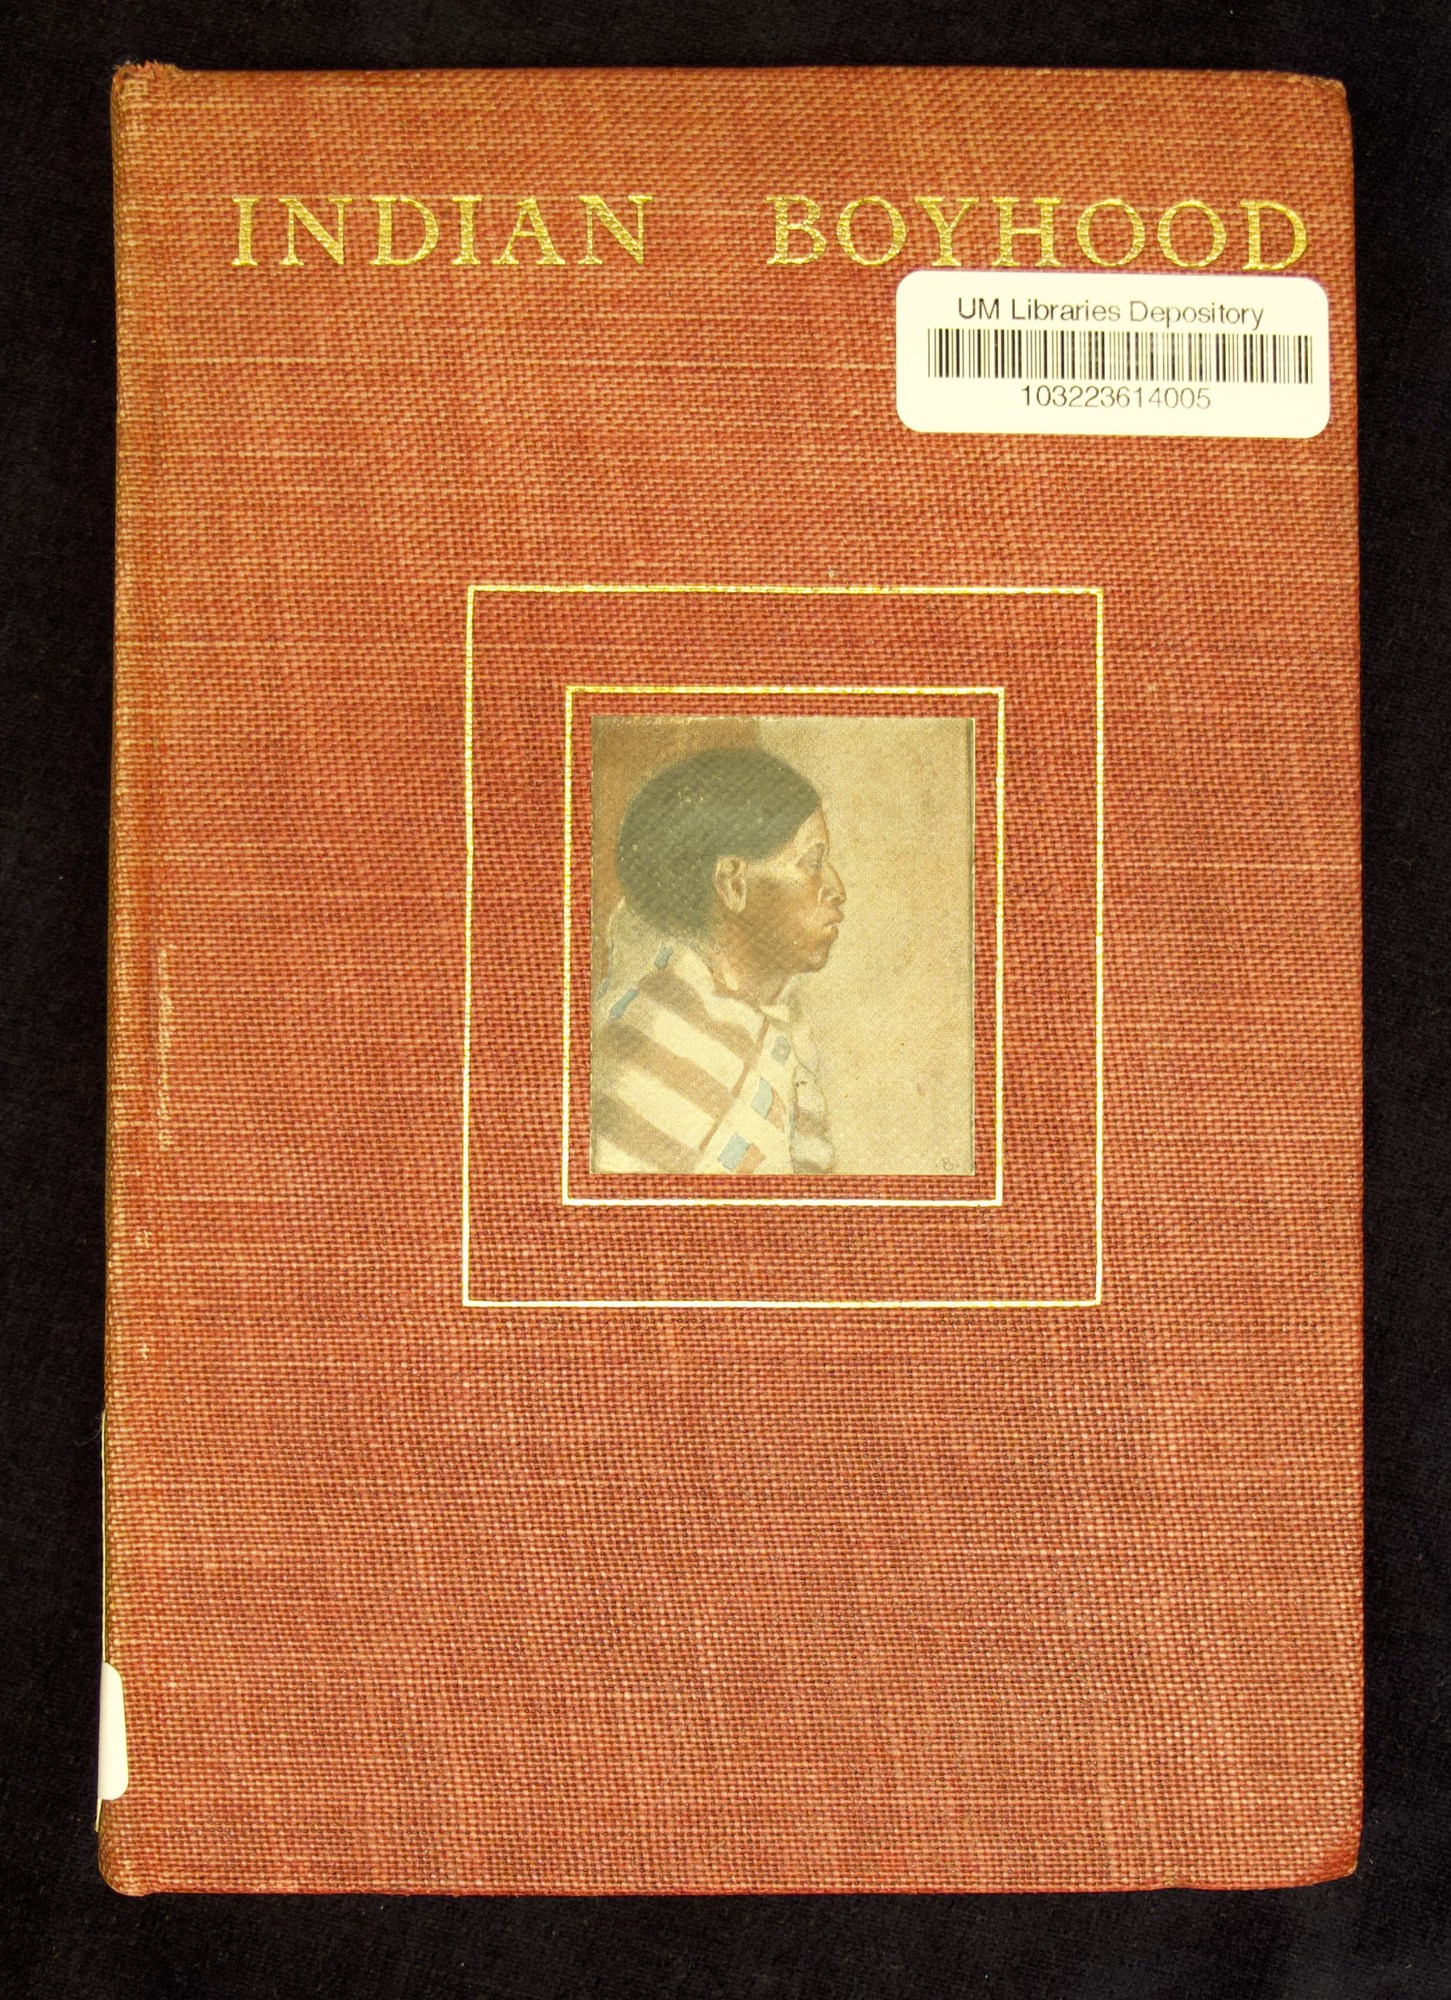 Indian boyhood / by Charles A. Eastman ; with illustrations by E. L. Blumenschein.